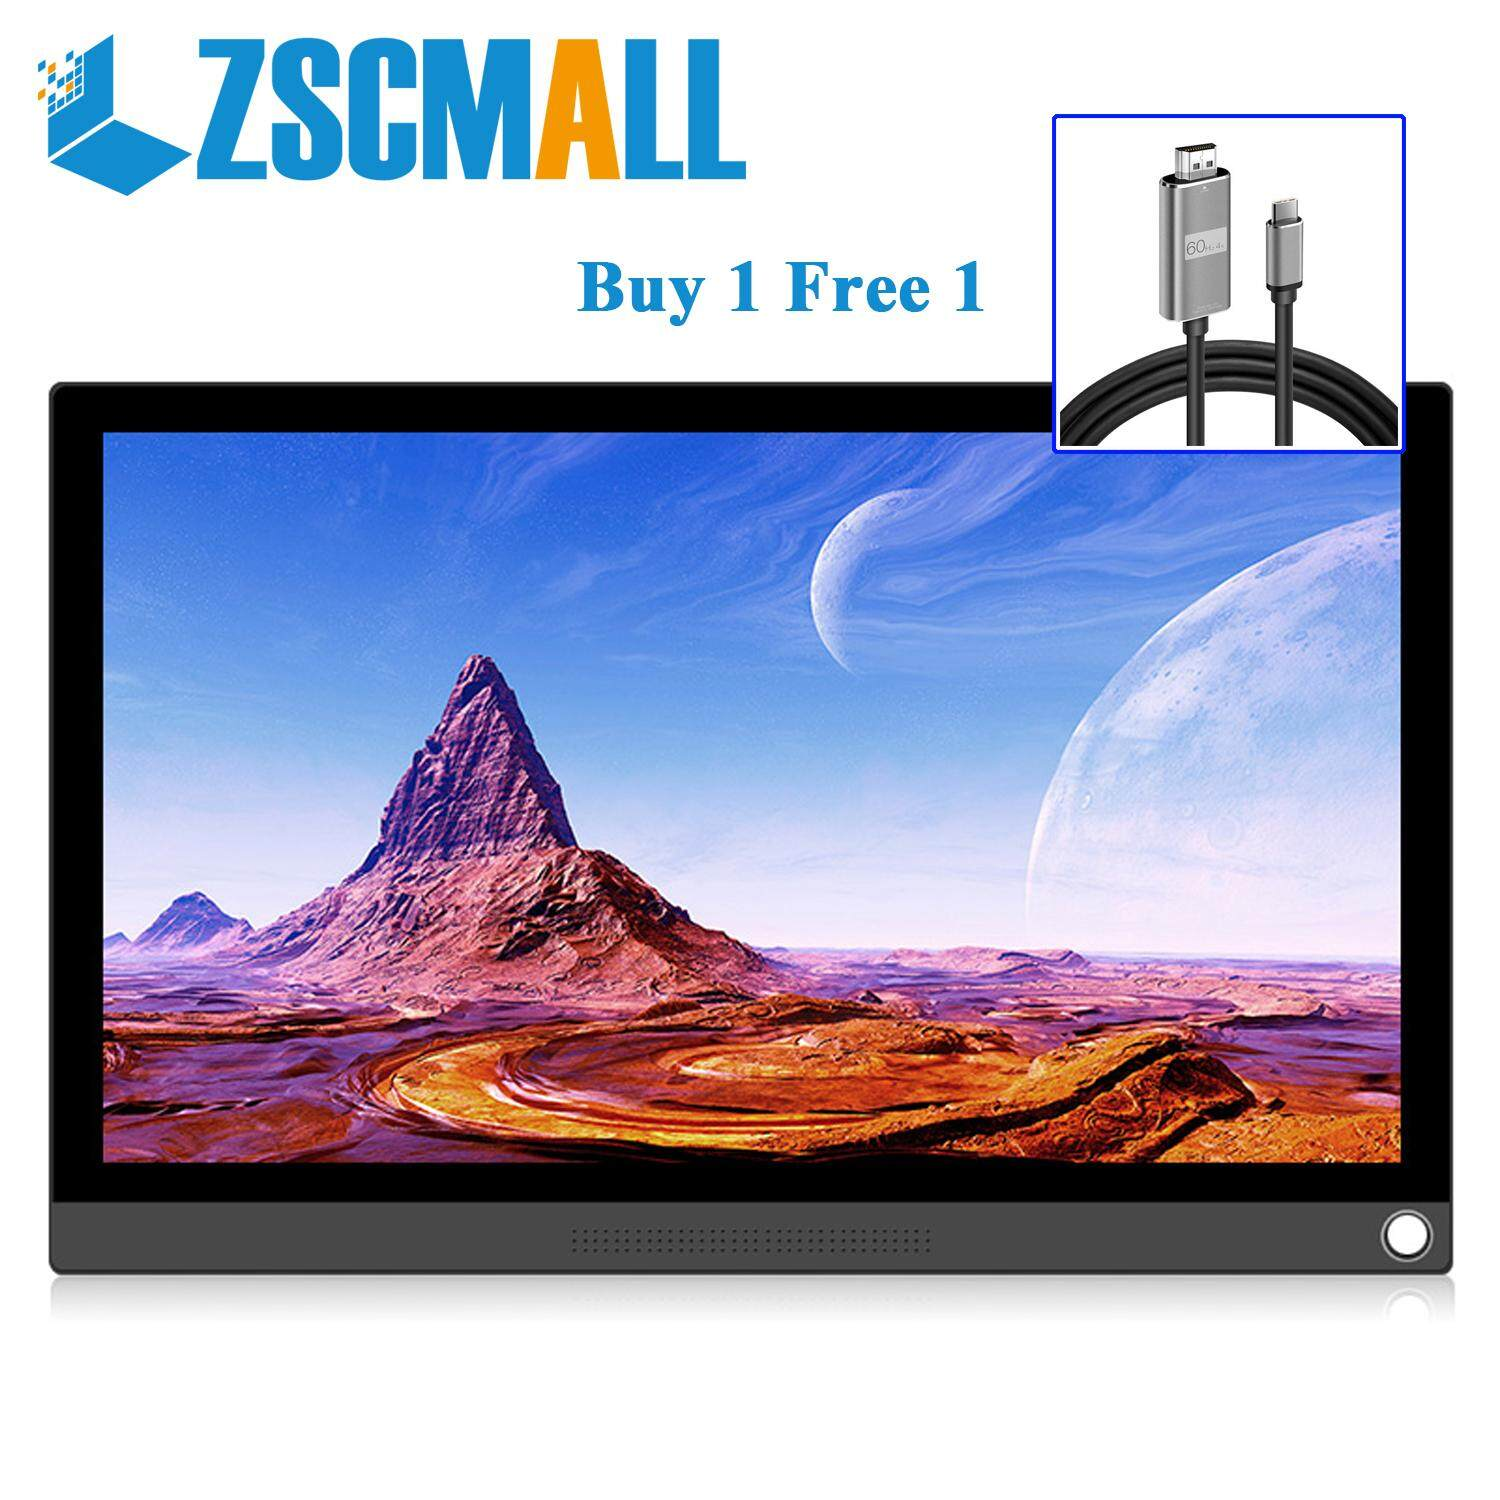 "ZSCMALL Touch Screen Monitor 15 6"" USB Type-C Full HD 1080 IPS USB C  Portable Monitor Built-in Dual Speakers and Battery Compatible with Laptop"